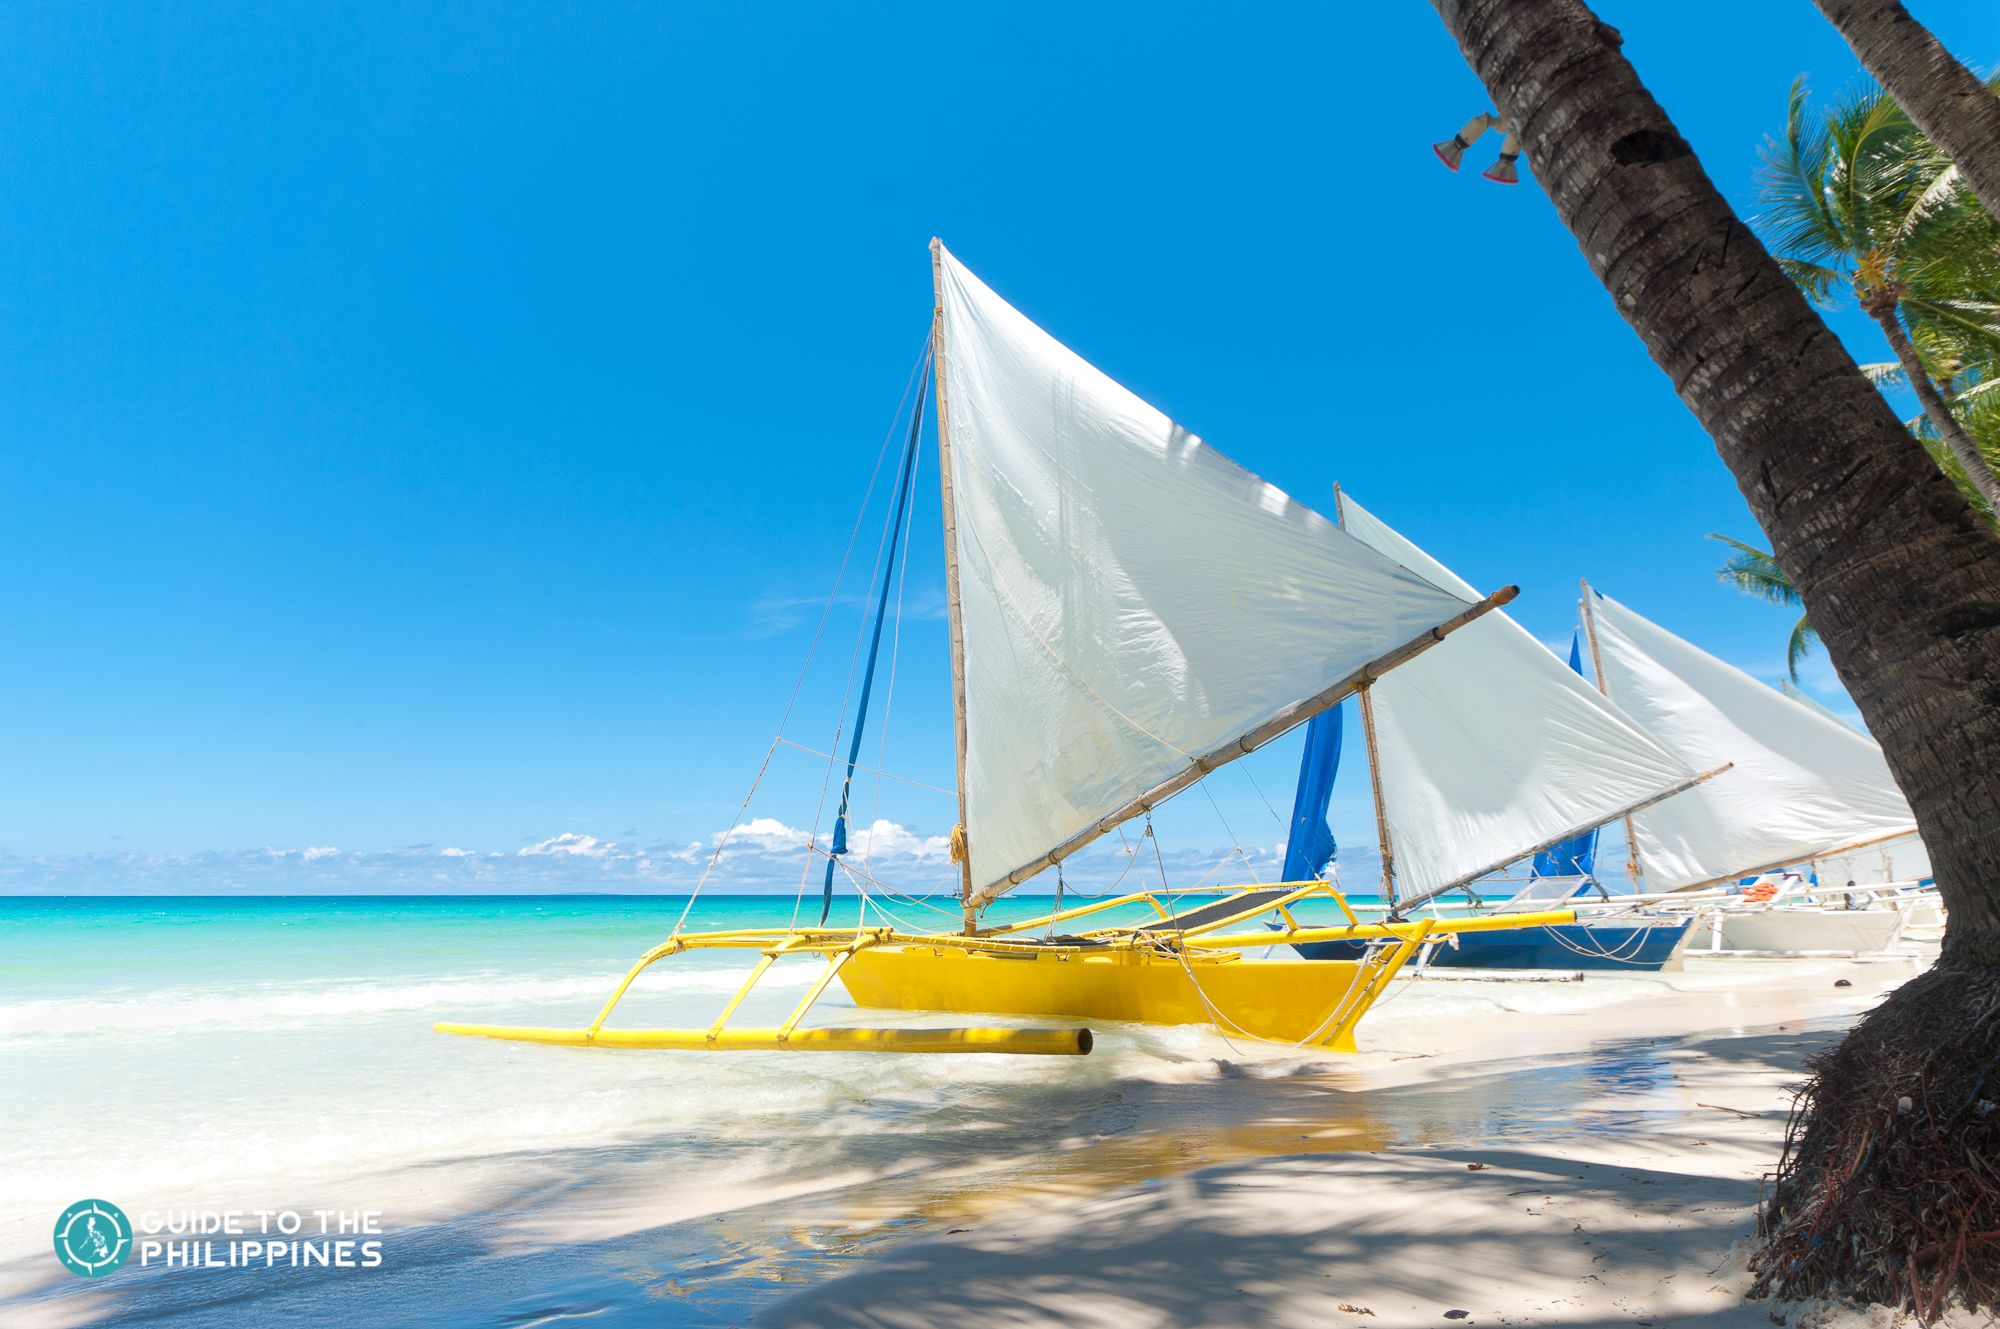 Package Deal to Boracay with Shangri-La Resort and Philippine Airlines 5 Days 4 Nights from Manila - day 3